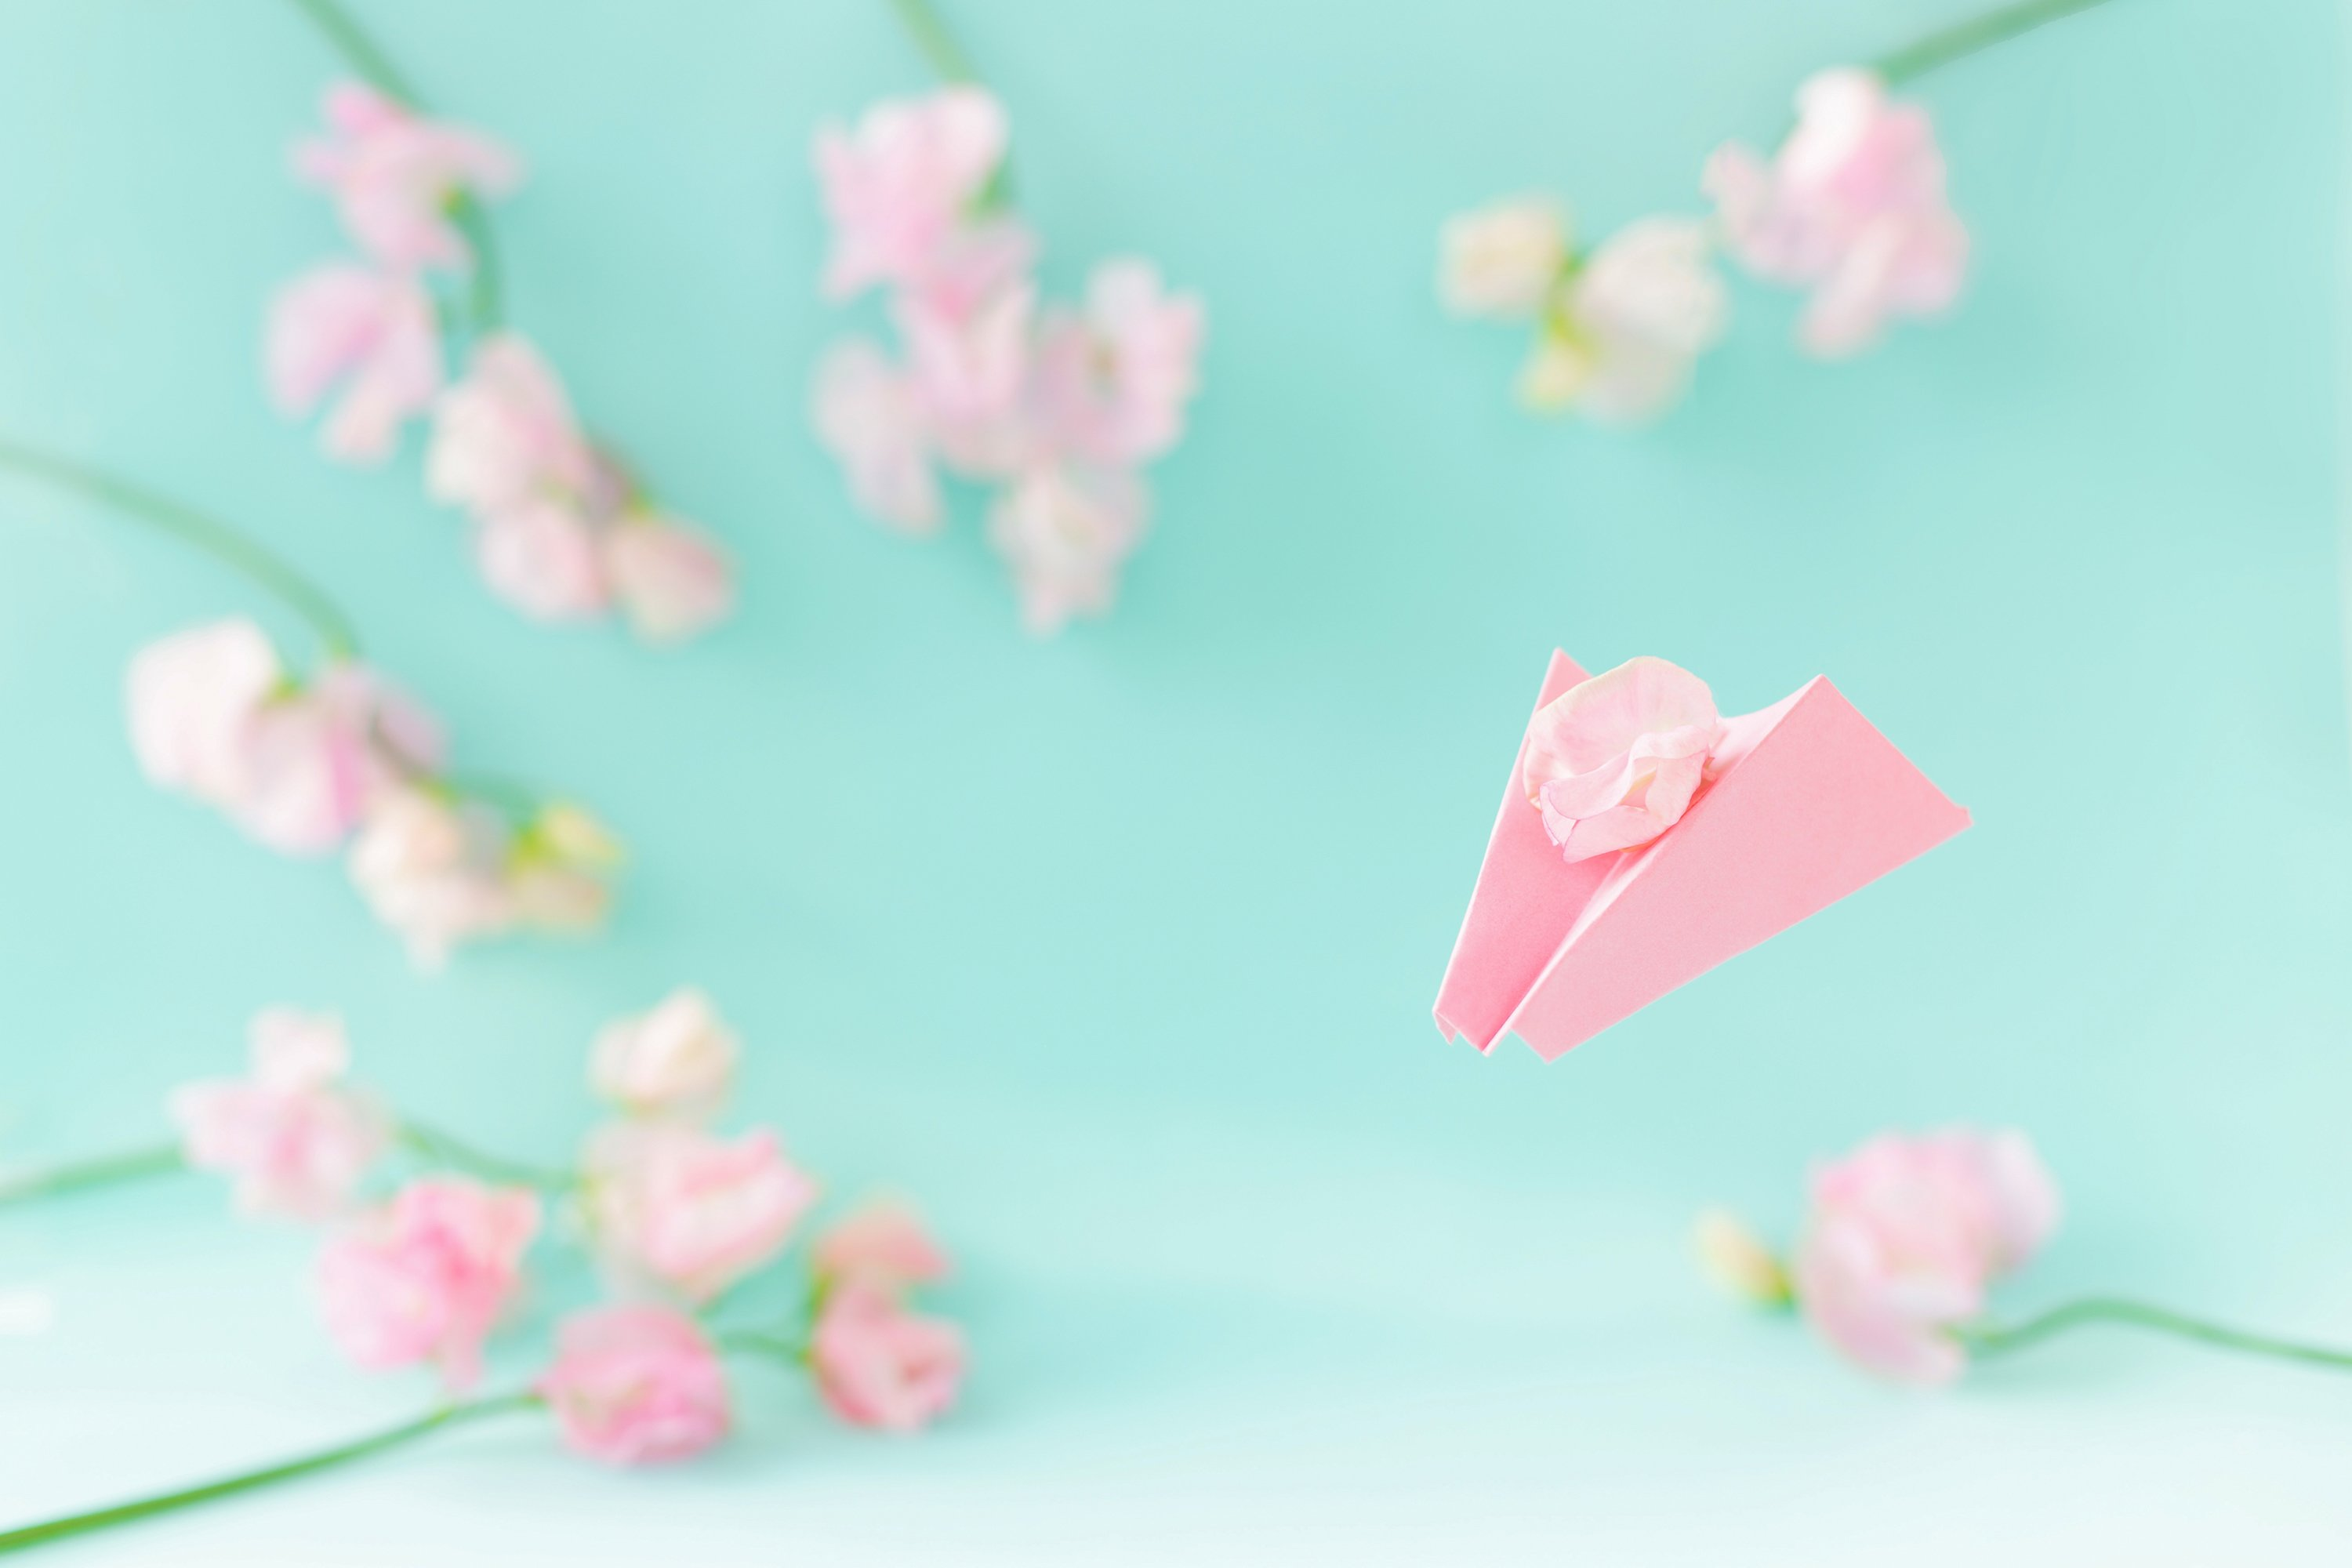 Paper airplane,pink sweet peas Lathyrus flowers.Blue colour example image 1